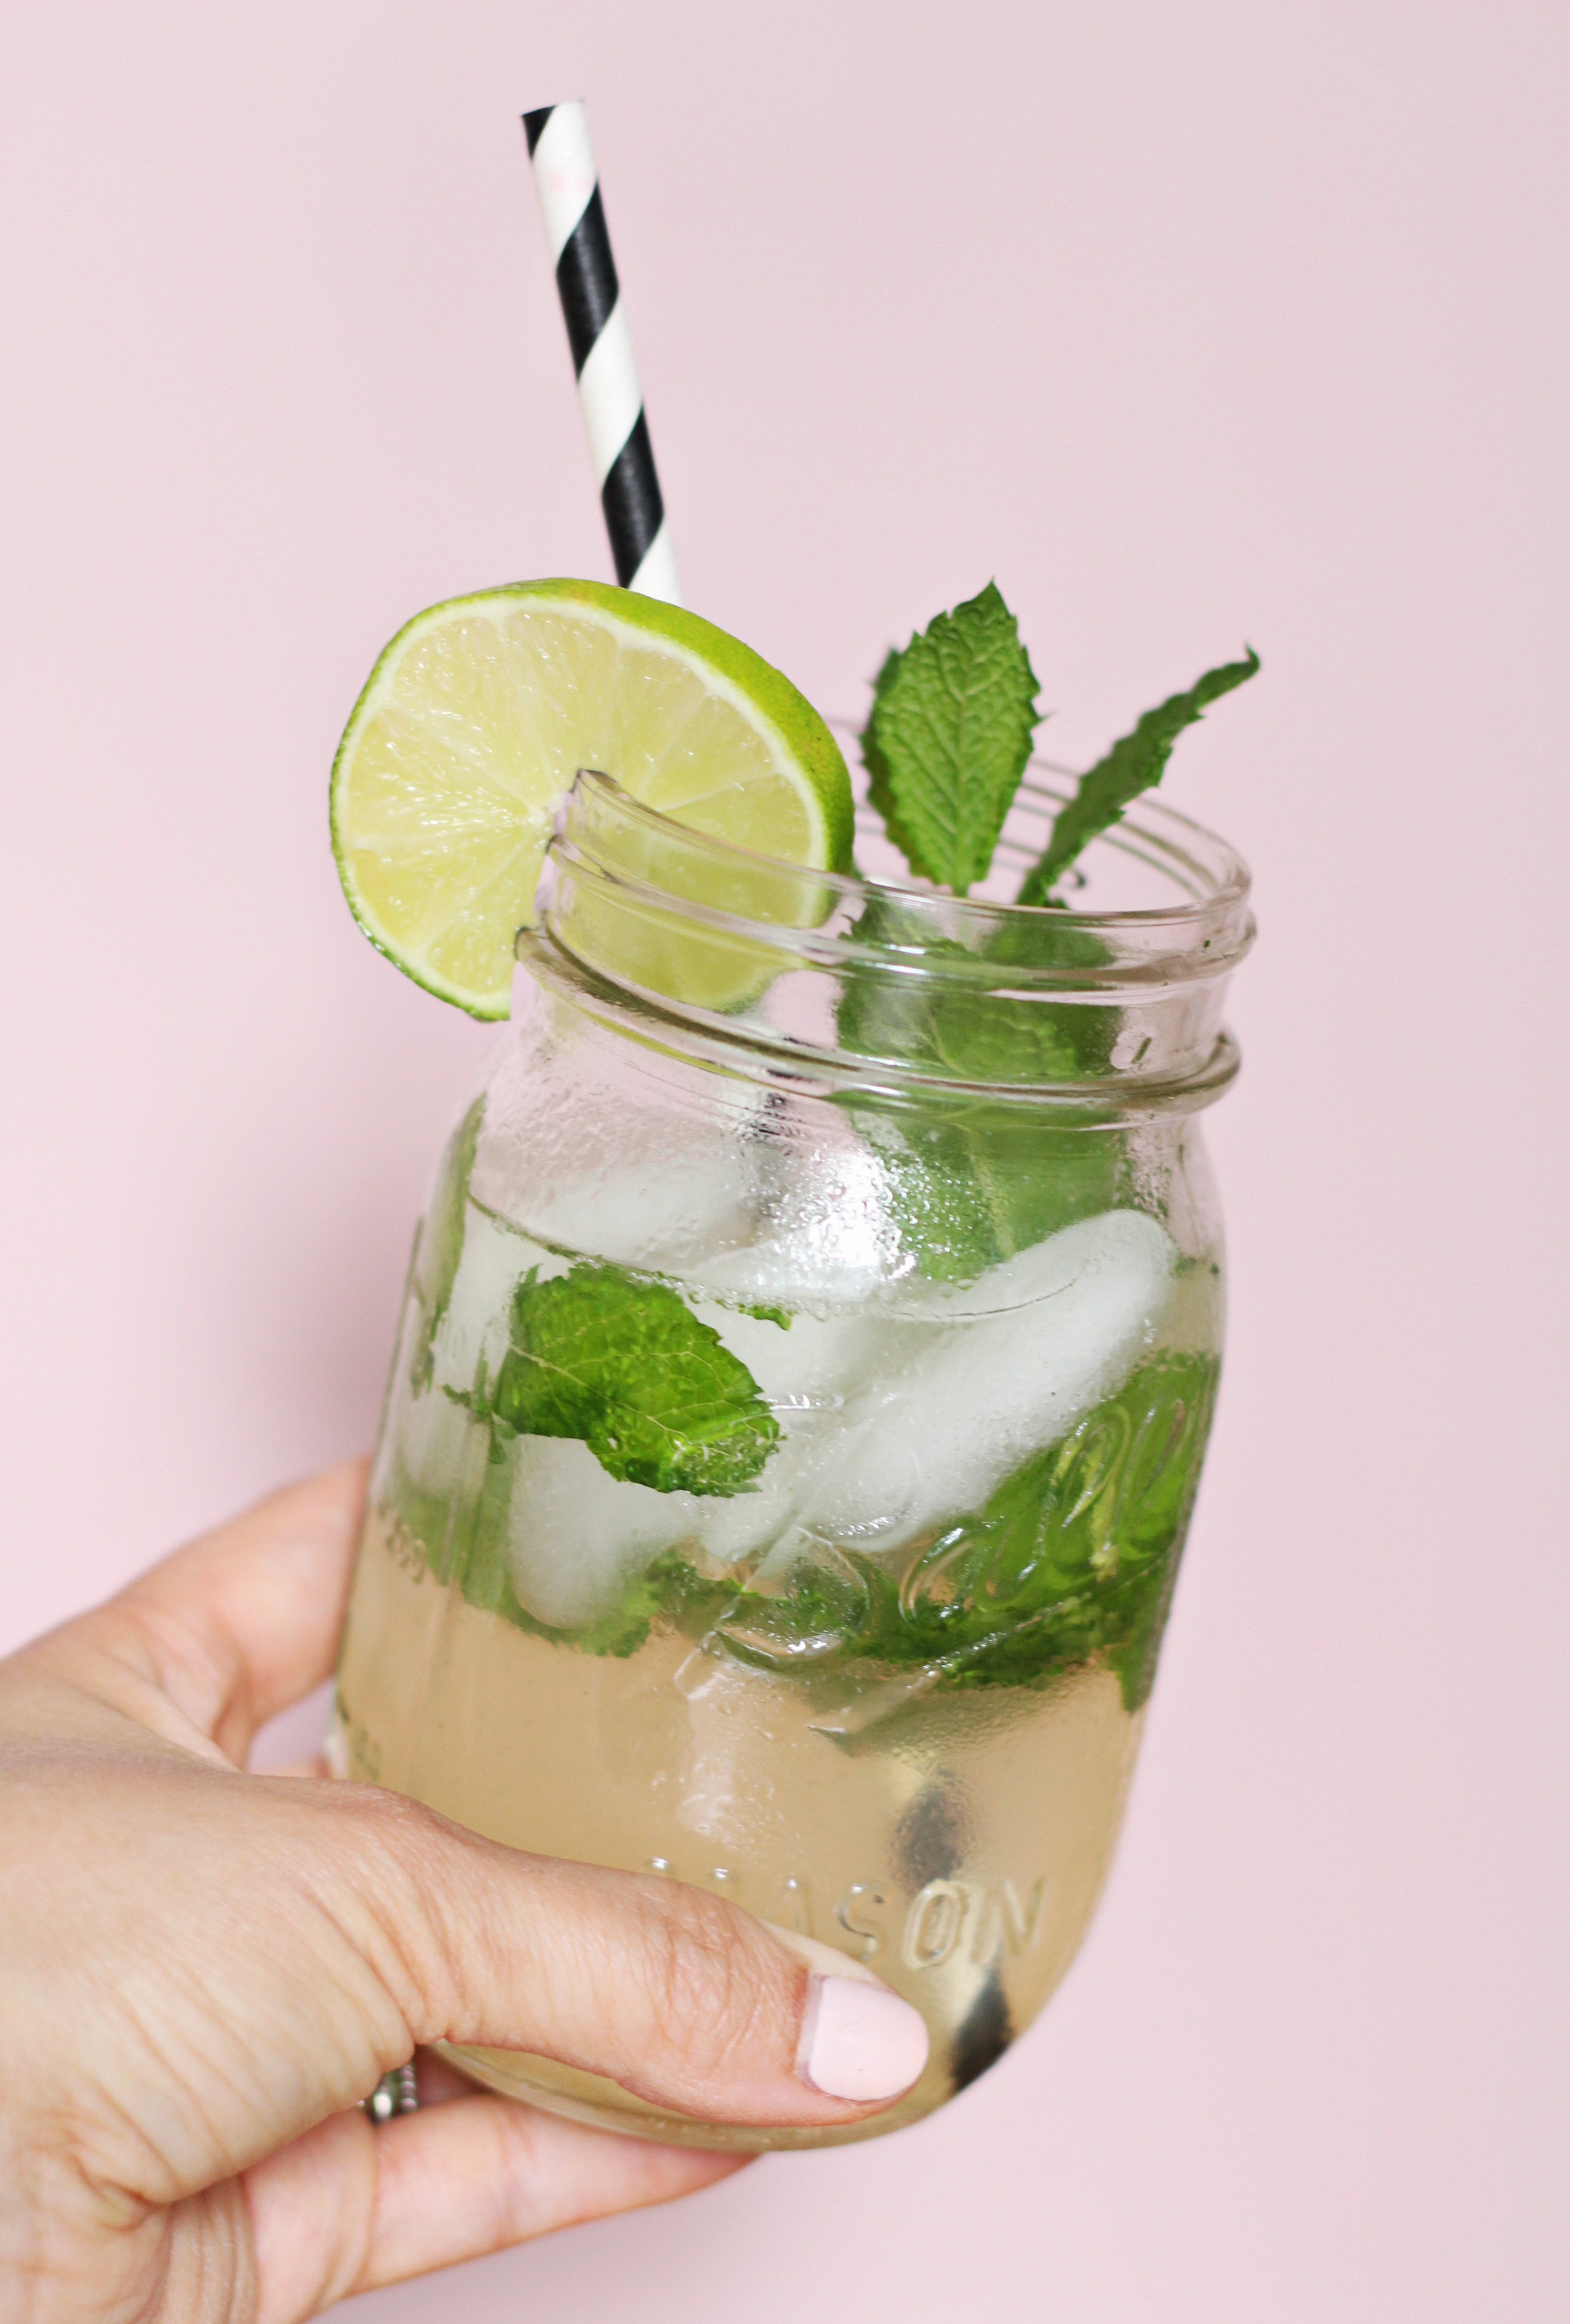 La Croix Coconut Lime Mocktail Recipe on Lily & Val Living